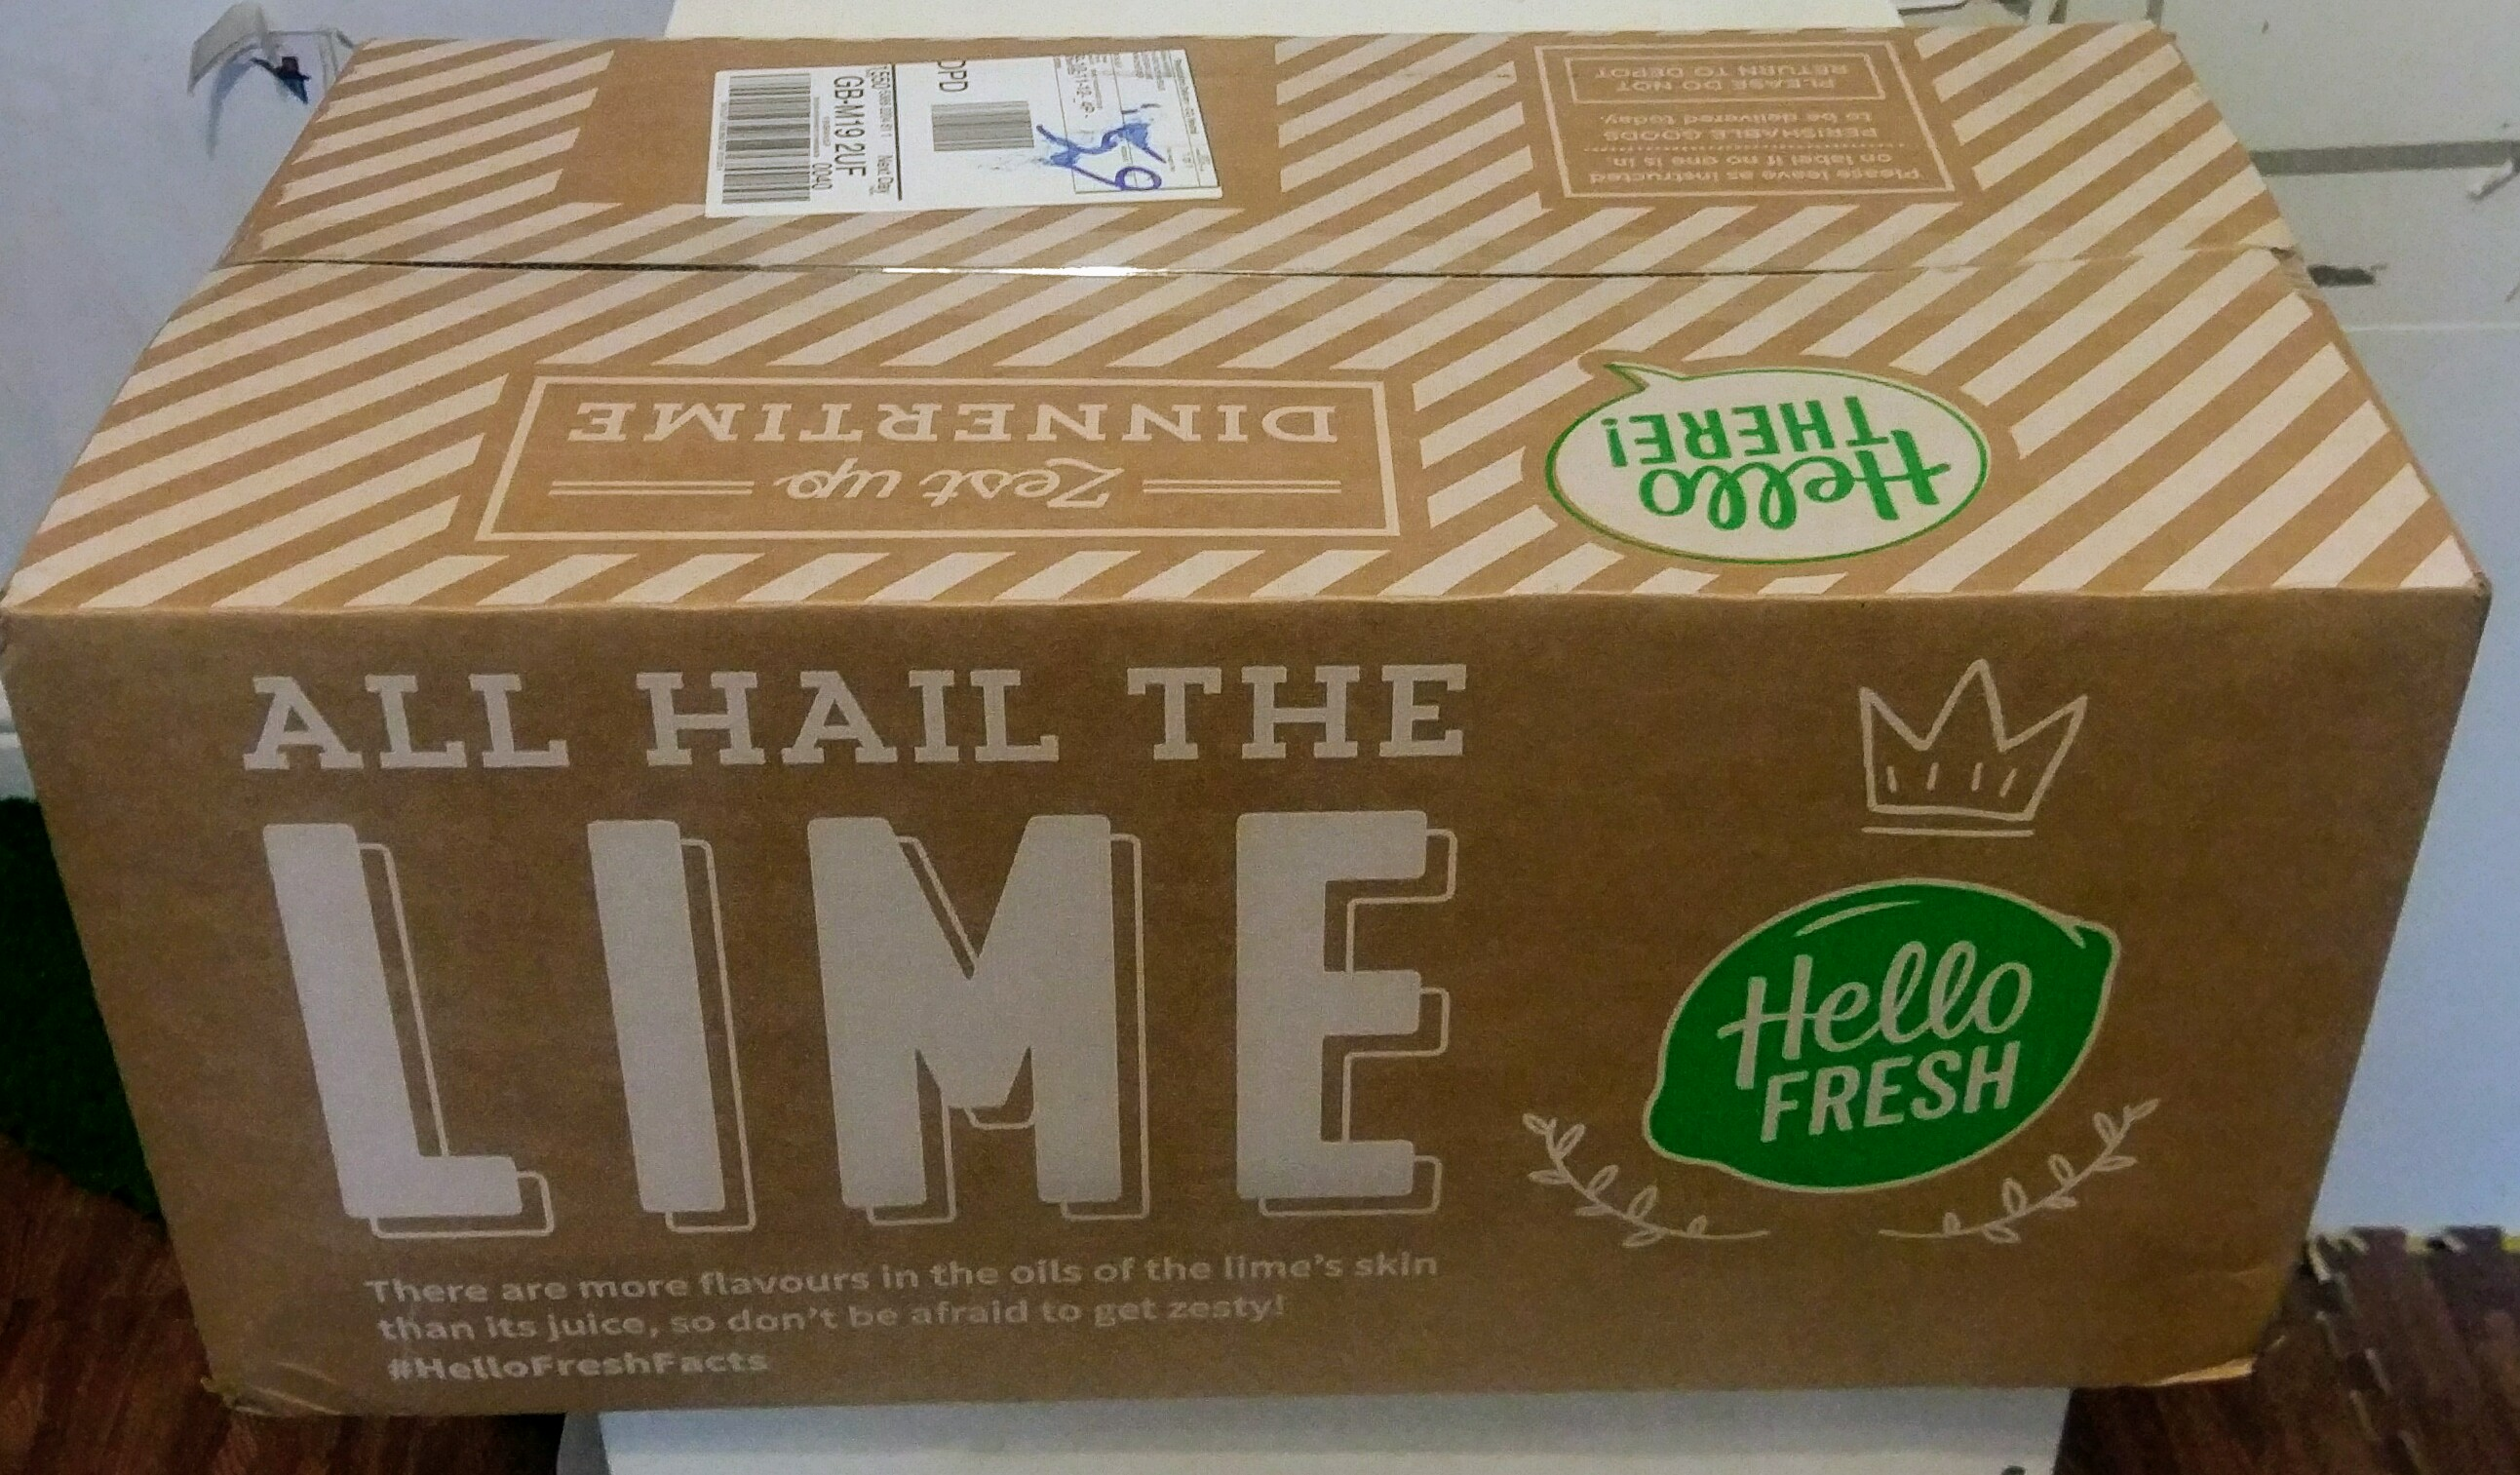 Our review of the Hello Fresh family food box